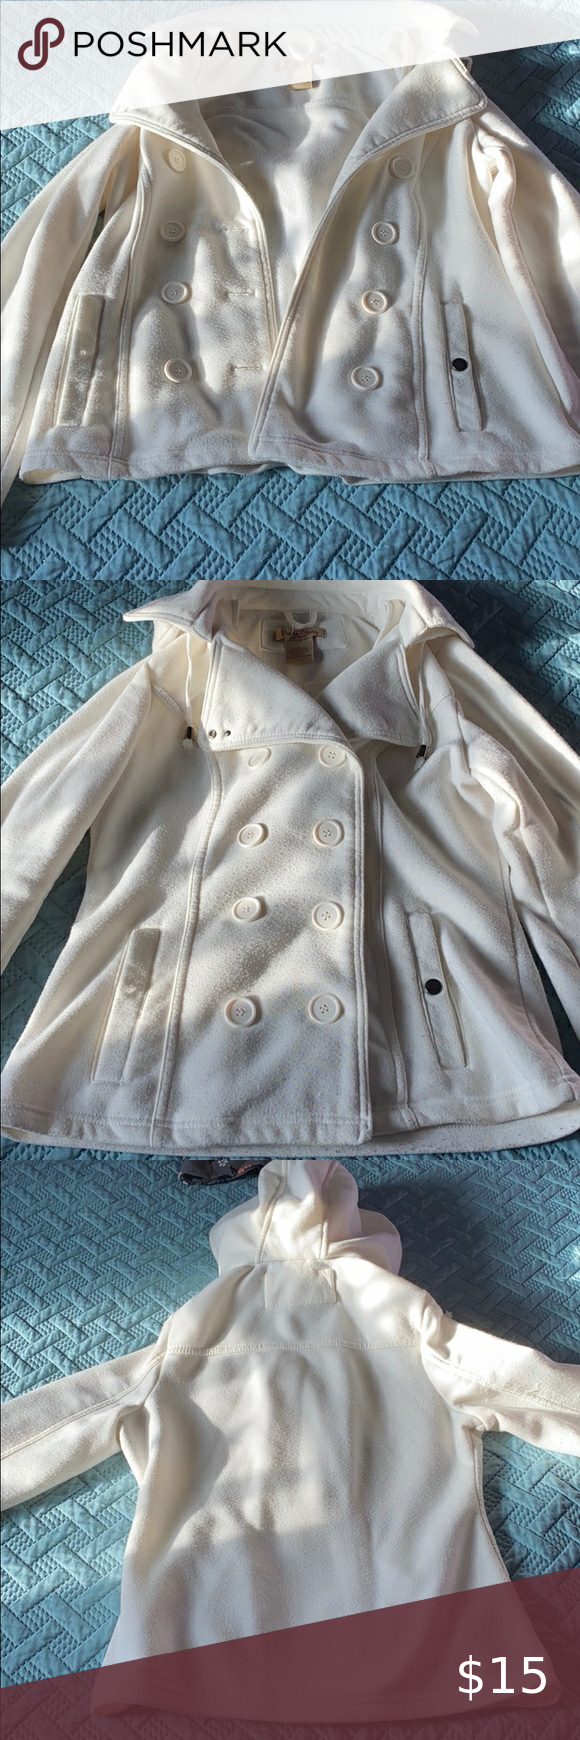 White Button Up Coat White Button Up Coat Size Large But Fits More Like A S M Missing Button Snap On Right Pock White Button Up Jackets For Women Blue Jacket [ 1740 x 580 Pixel ]